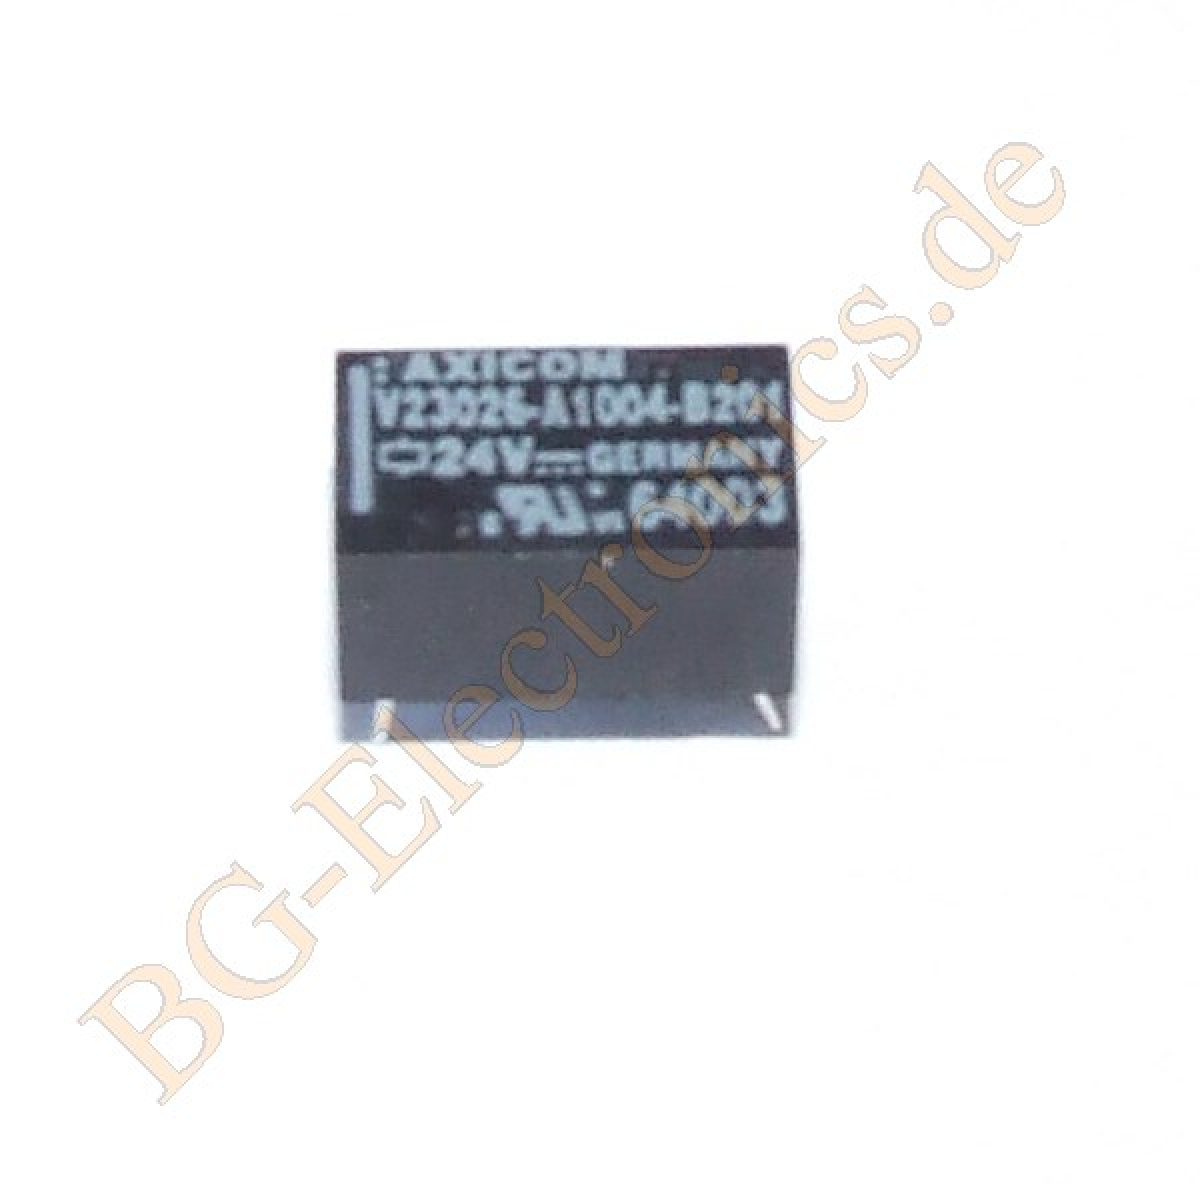 1-x-V23026-A1004-B201-Low-Signal-Relays-PCB-7-62mm-6-9mm-13mm-Axicom-1pcs